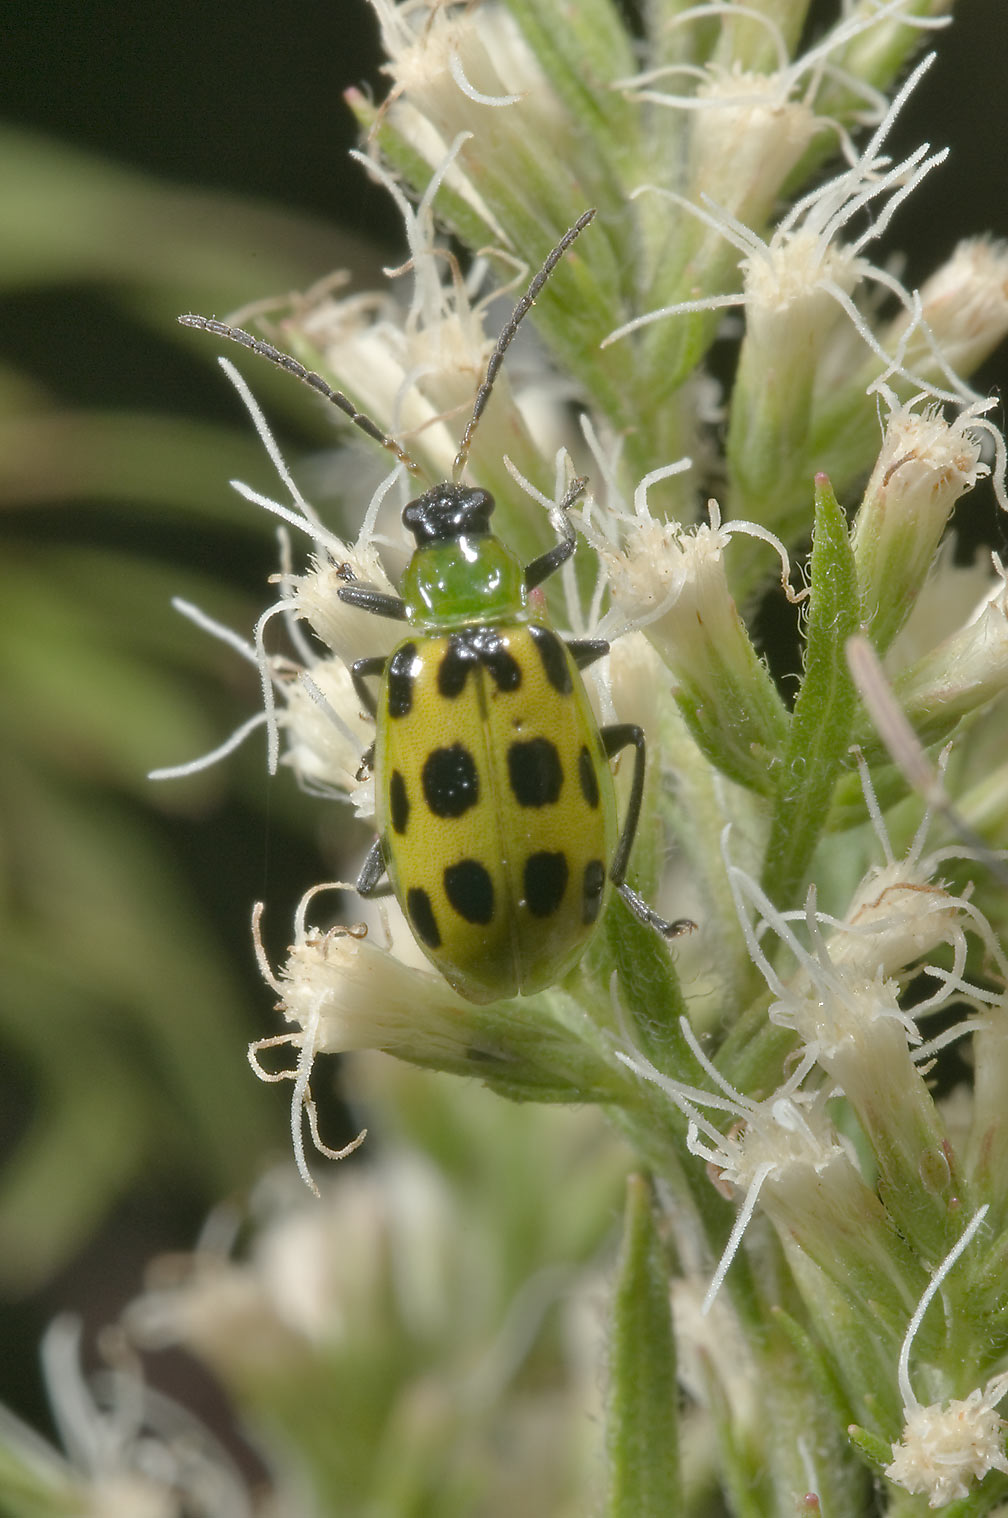 Spotted cucumber beetle (Diabrotica...Creek Park. College Station, Texas